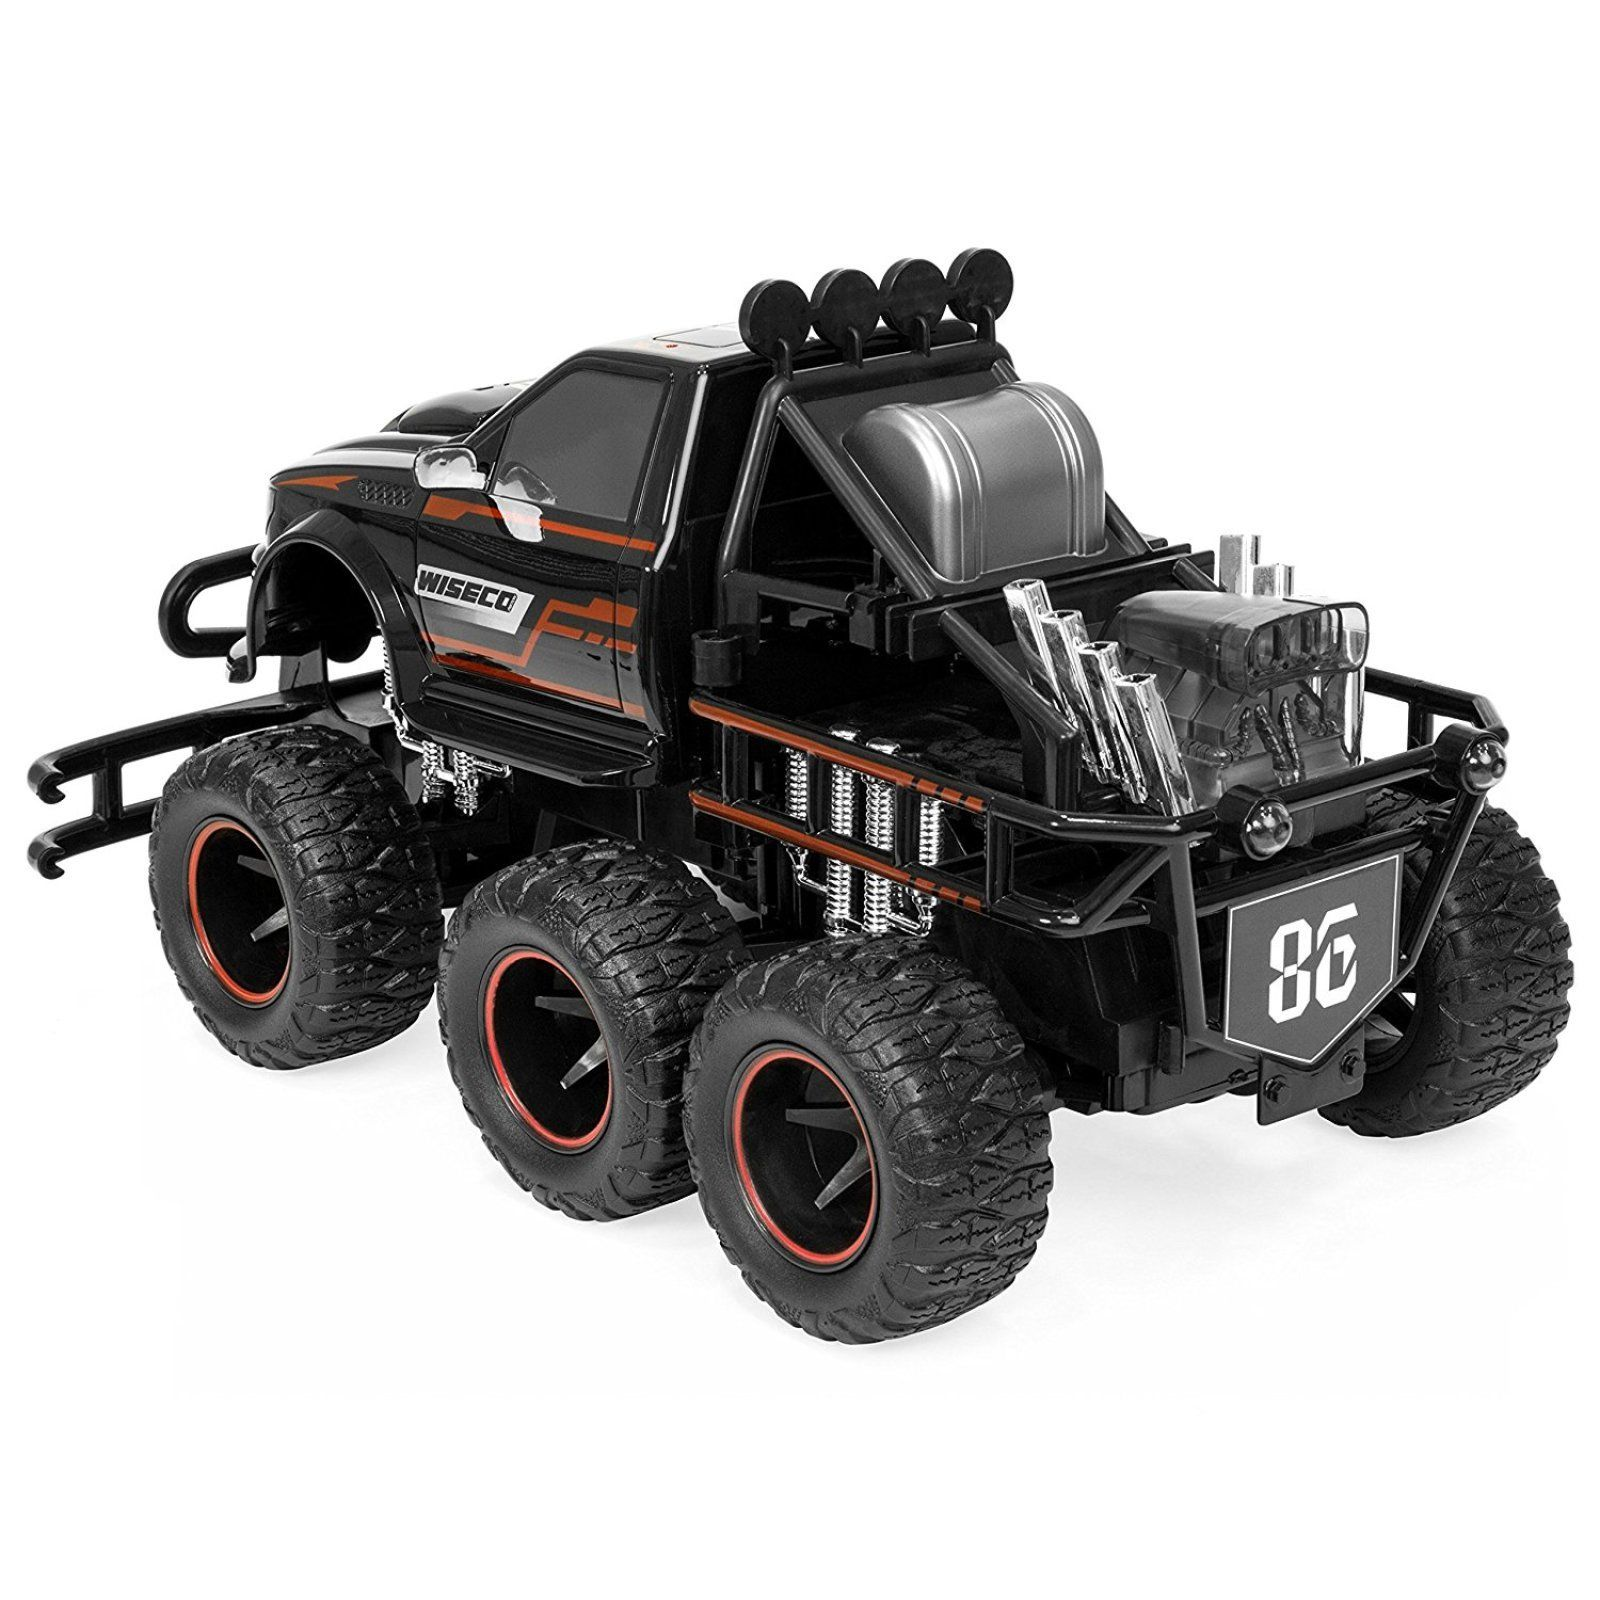 Gizmo Toy Ibot Remote Control Off Road Racing Car Rc Monster Truck